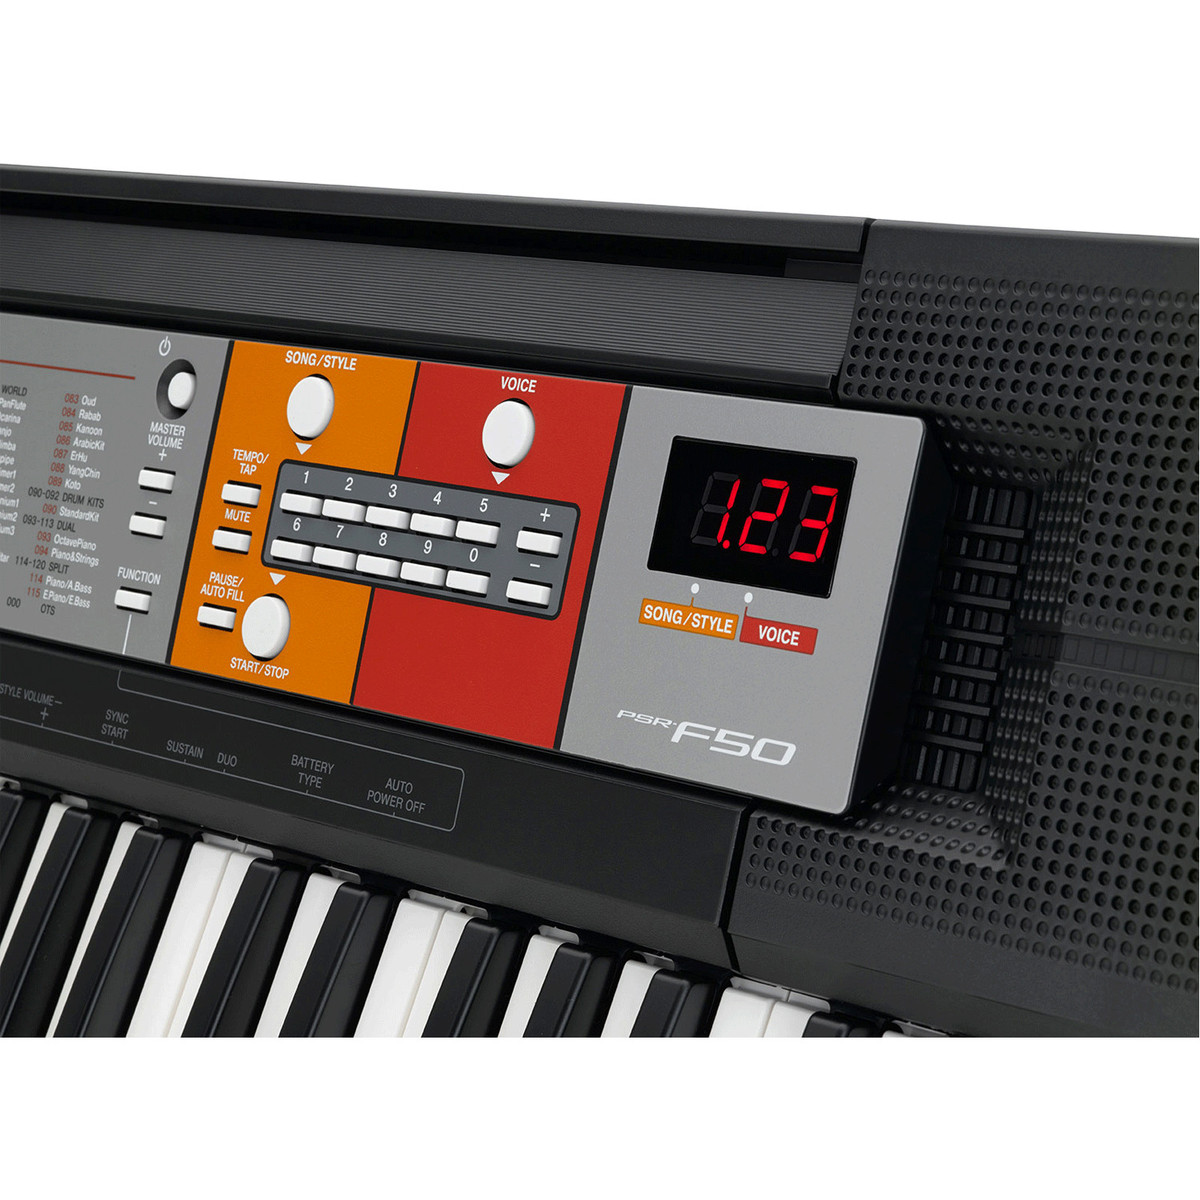 Yamaha psr f50 portable keyboard b stock at for Yamaha professional keyboard price